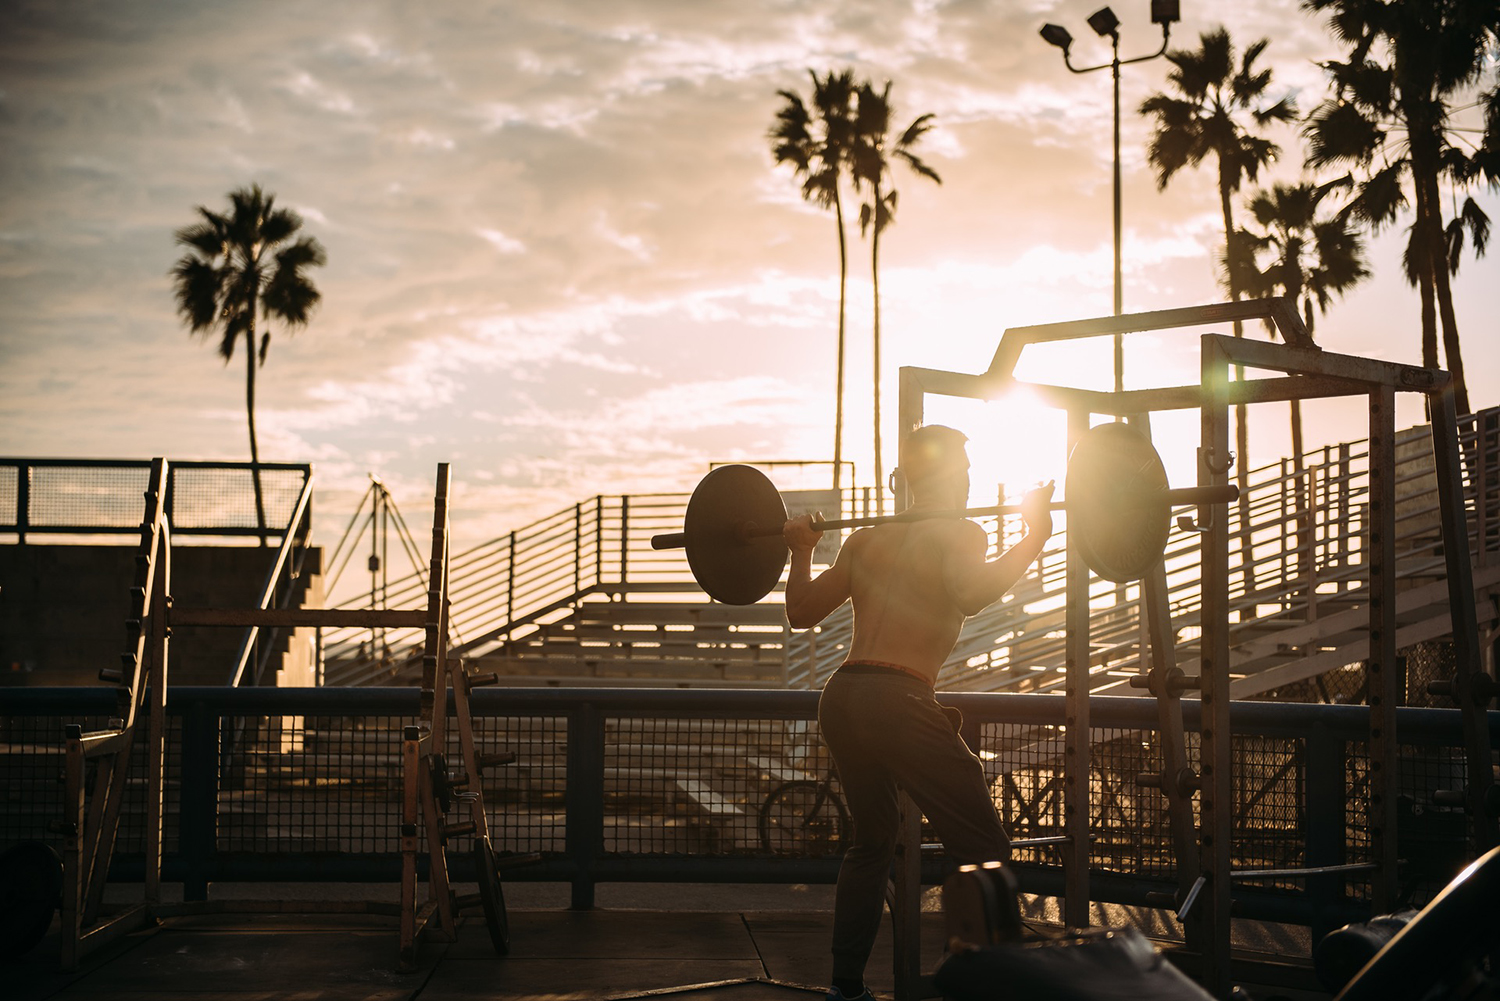 Fitness Man Doing Barbell Squats Outside